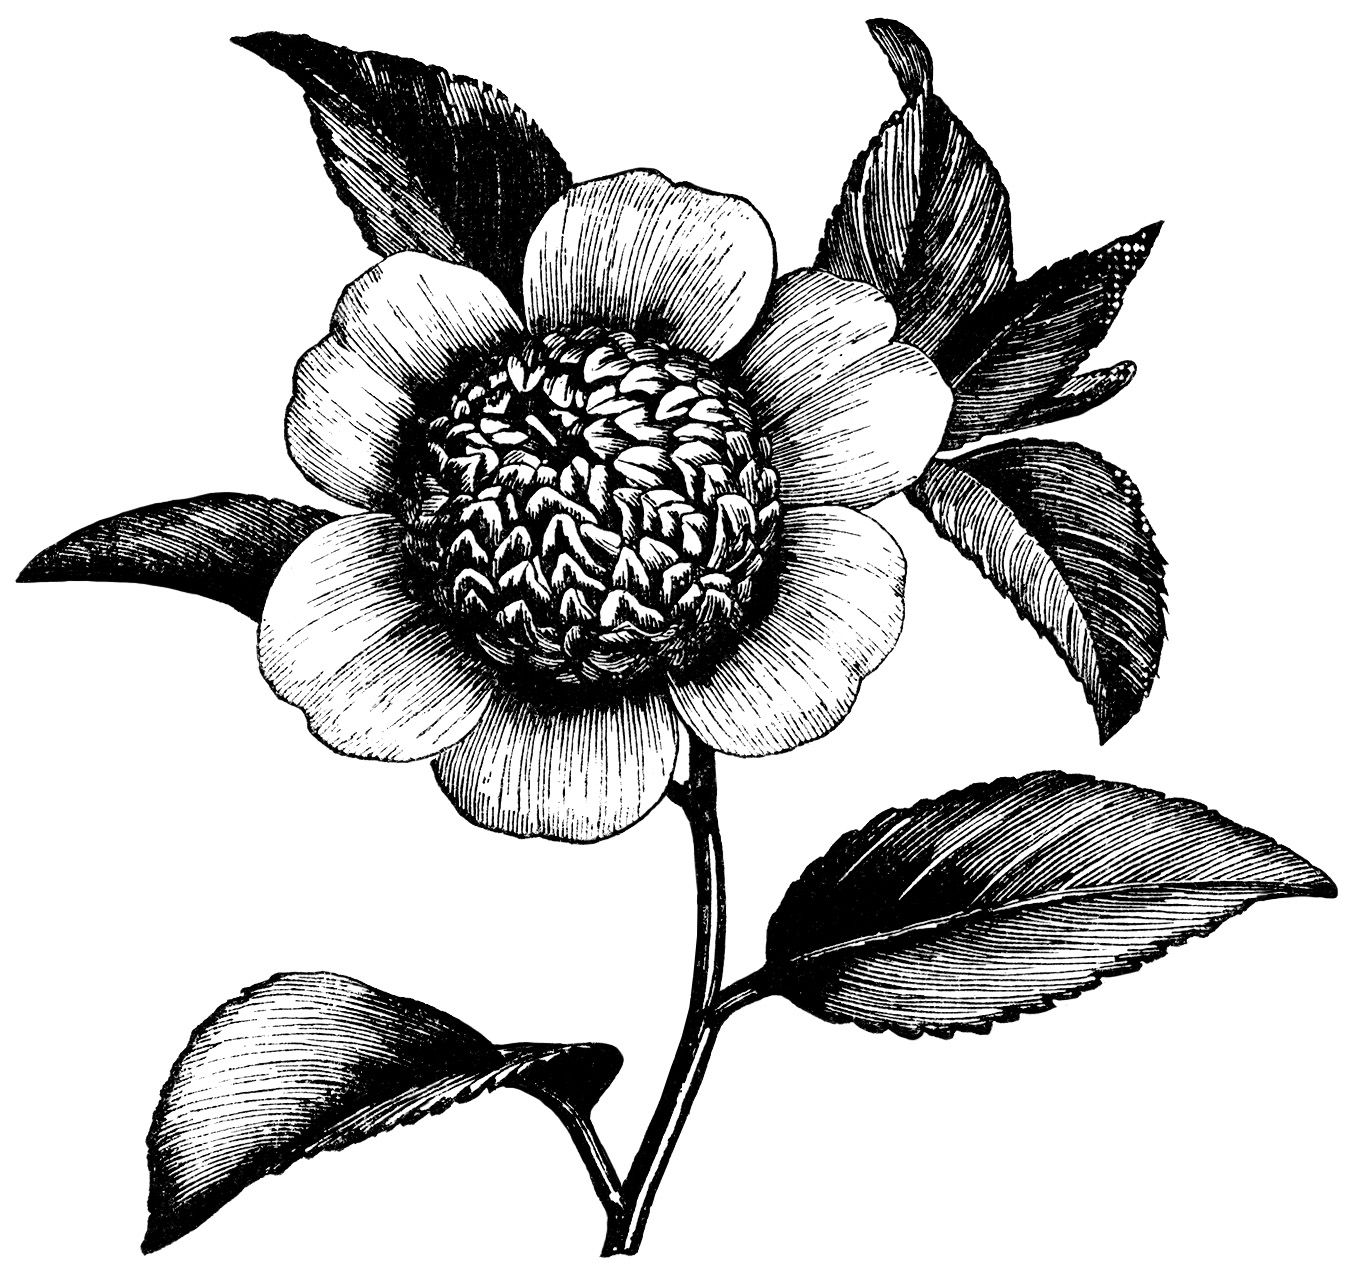 camellia japonica anemonaeflora camellia flower illustration black rh pinterest ph black and white clipart flower pot black and white flower clip art free images